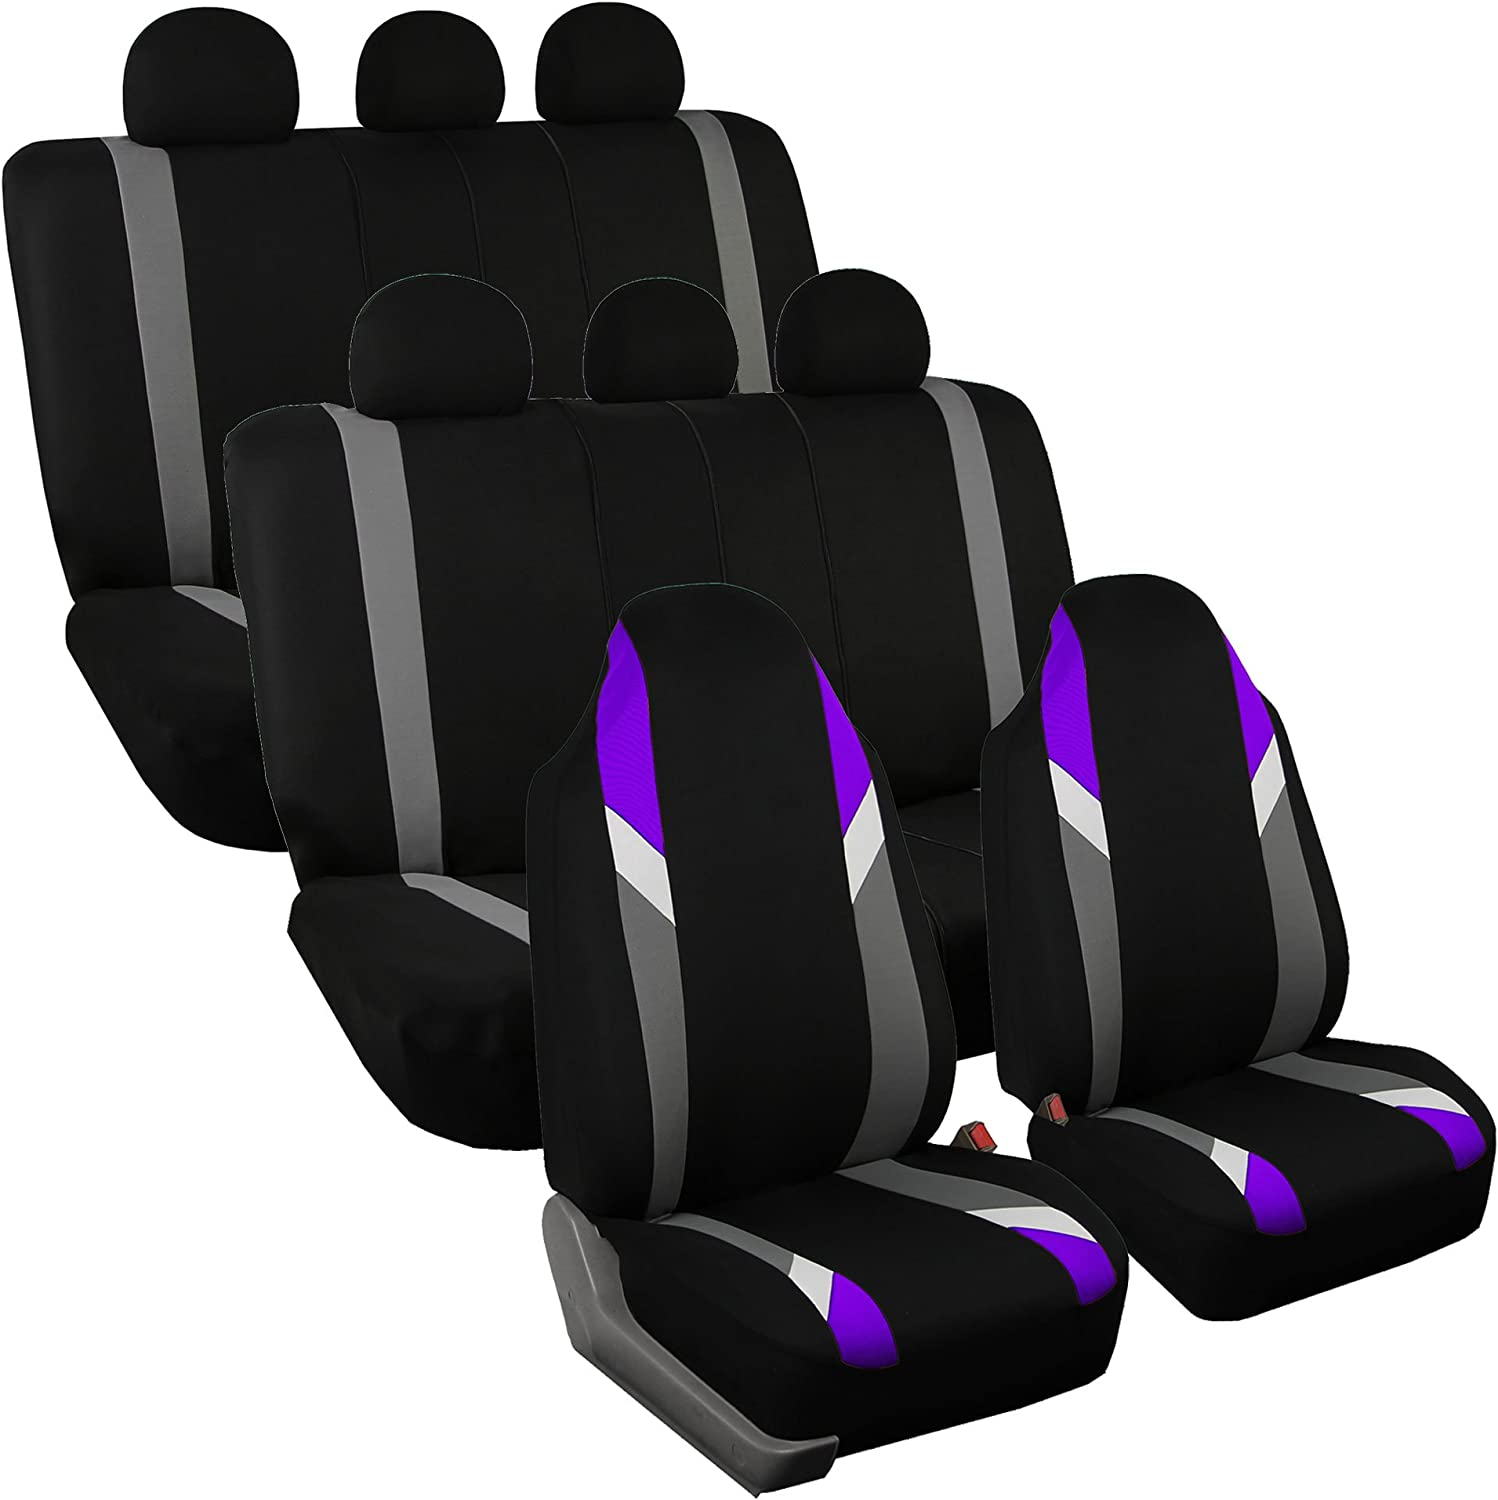 FH Group FB133128 Three Row- Premium Modernistic Seat Covers Purple/Black- Fit Most Car, Truck, SUV, or Van